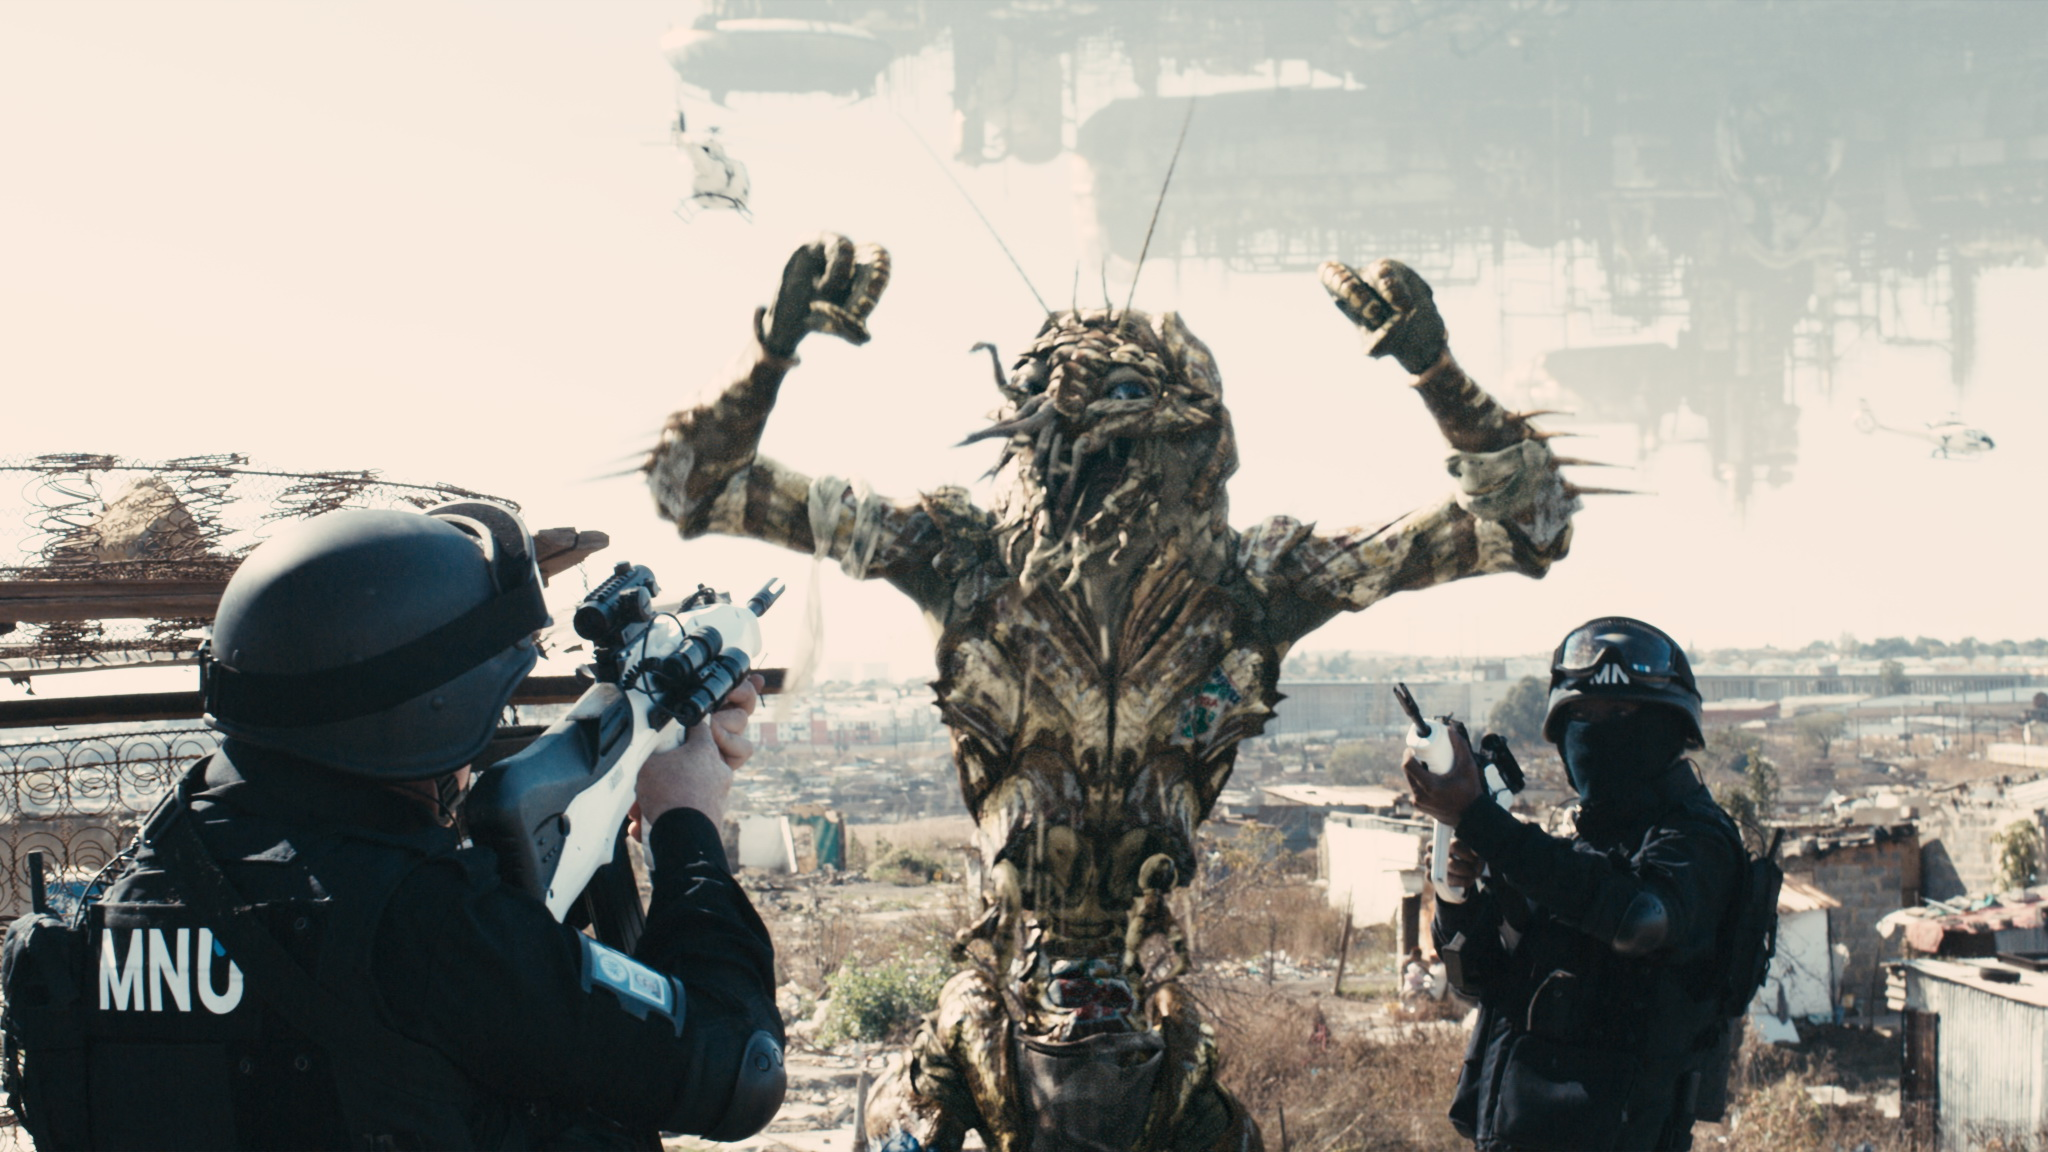 The movie District 9, ushered in a whole new generation of Sci-fi based on the continent. With the rise of the Afro-futurism movement, the promise of more ...